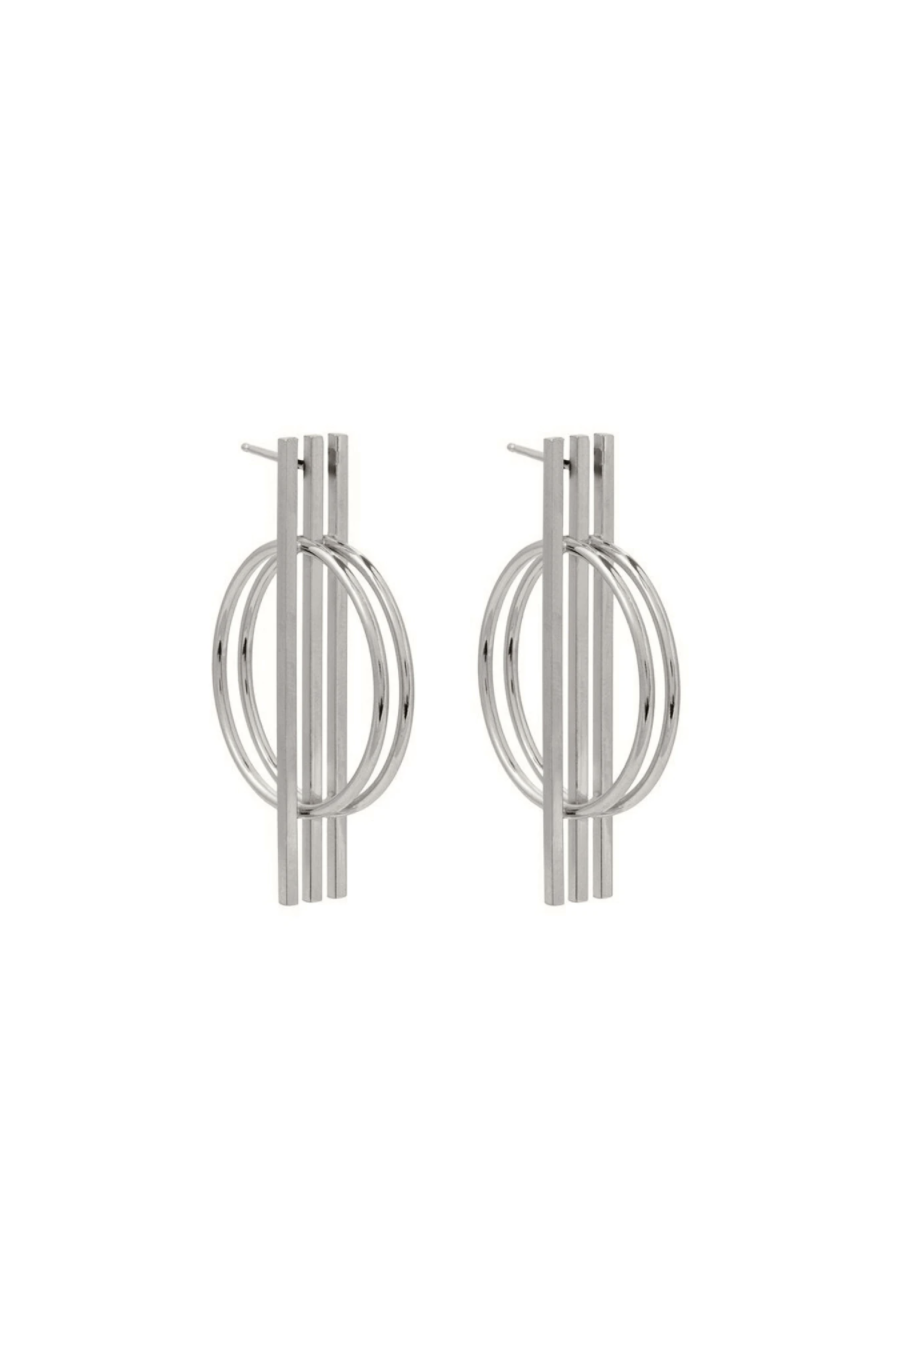 Studio Collect Graphic Statement Earrings